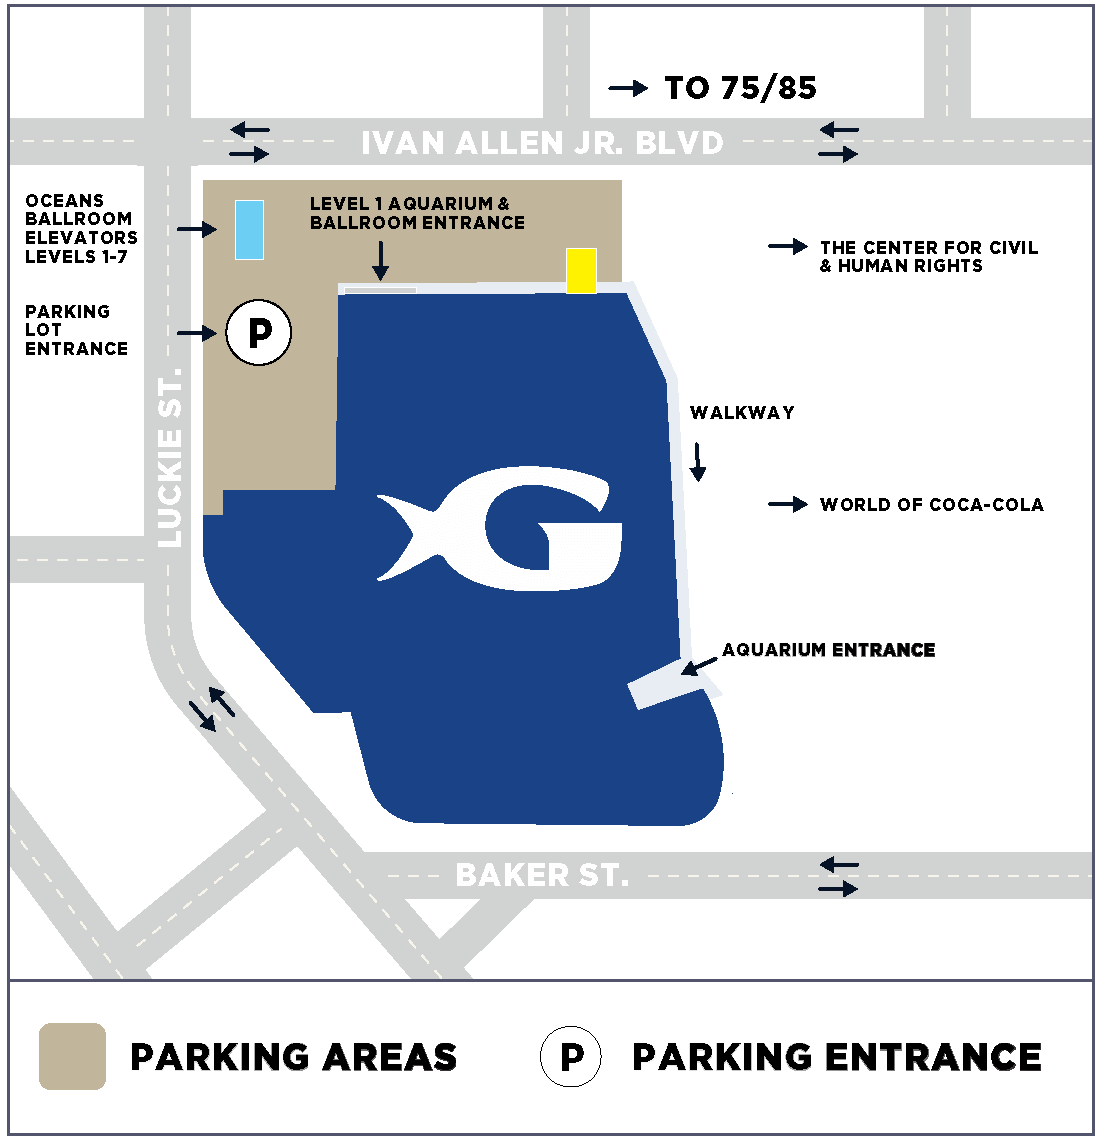 Directions & Parking 4